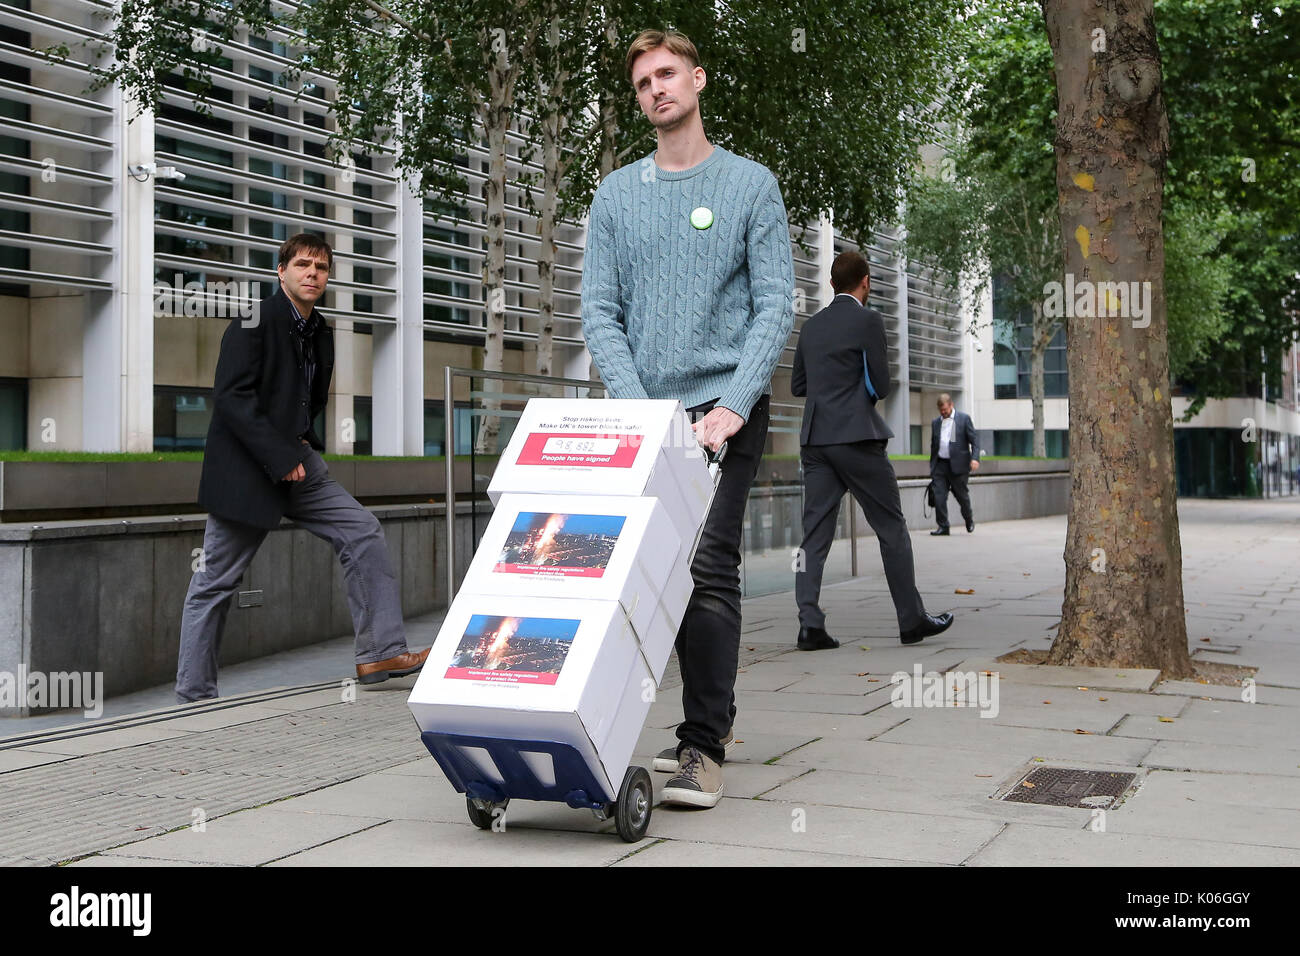 Westminster. London, UK. 22nd Aug, 2017. John Tyson, the founder of a petition to bring in fire safety regulations to make Britain's tower blocks safer poses for media before handing in the petition to the Department for Communities and Local Government (DCLG). The petition of 98,882 signatures to the DCLG follows the critical findings of the 2013 coroner's report on the 2009 Lakanal fire, which highlighted issues that could have prevented Grenfell, the petition is asking for the immediate implementation of recommendations from that report. Credit: Dinendra Haria/Alamy Live News - Stock Image